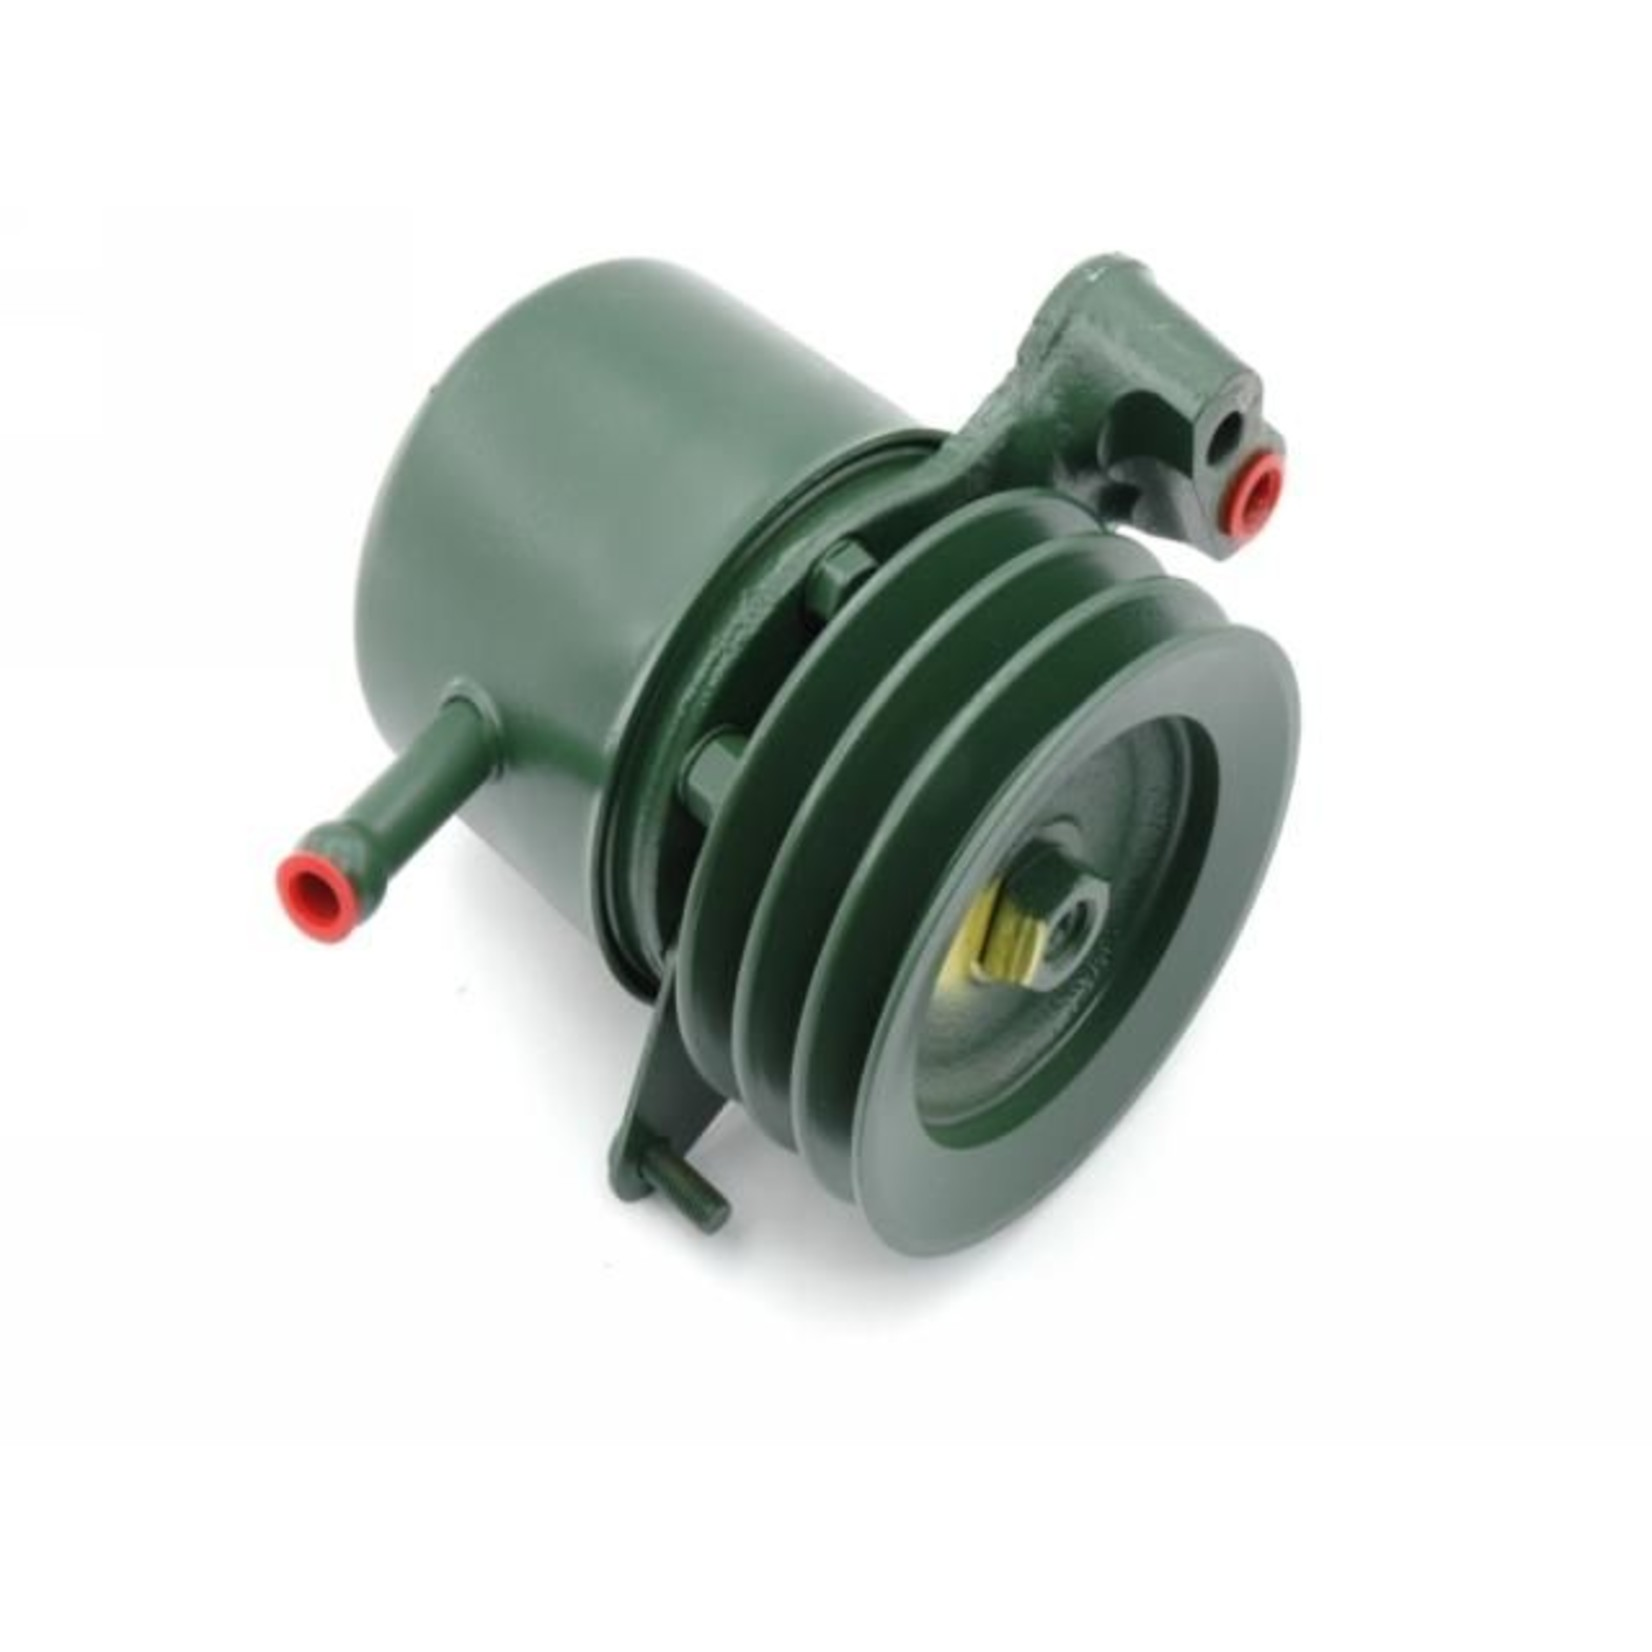 High pressure pump 7 pistons reconditioned LHM - 3 poulie Nr Org: 5409578